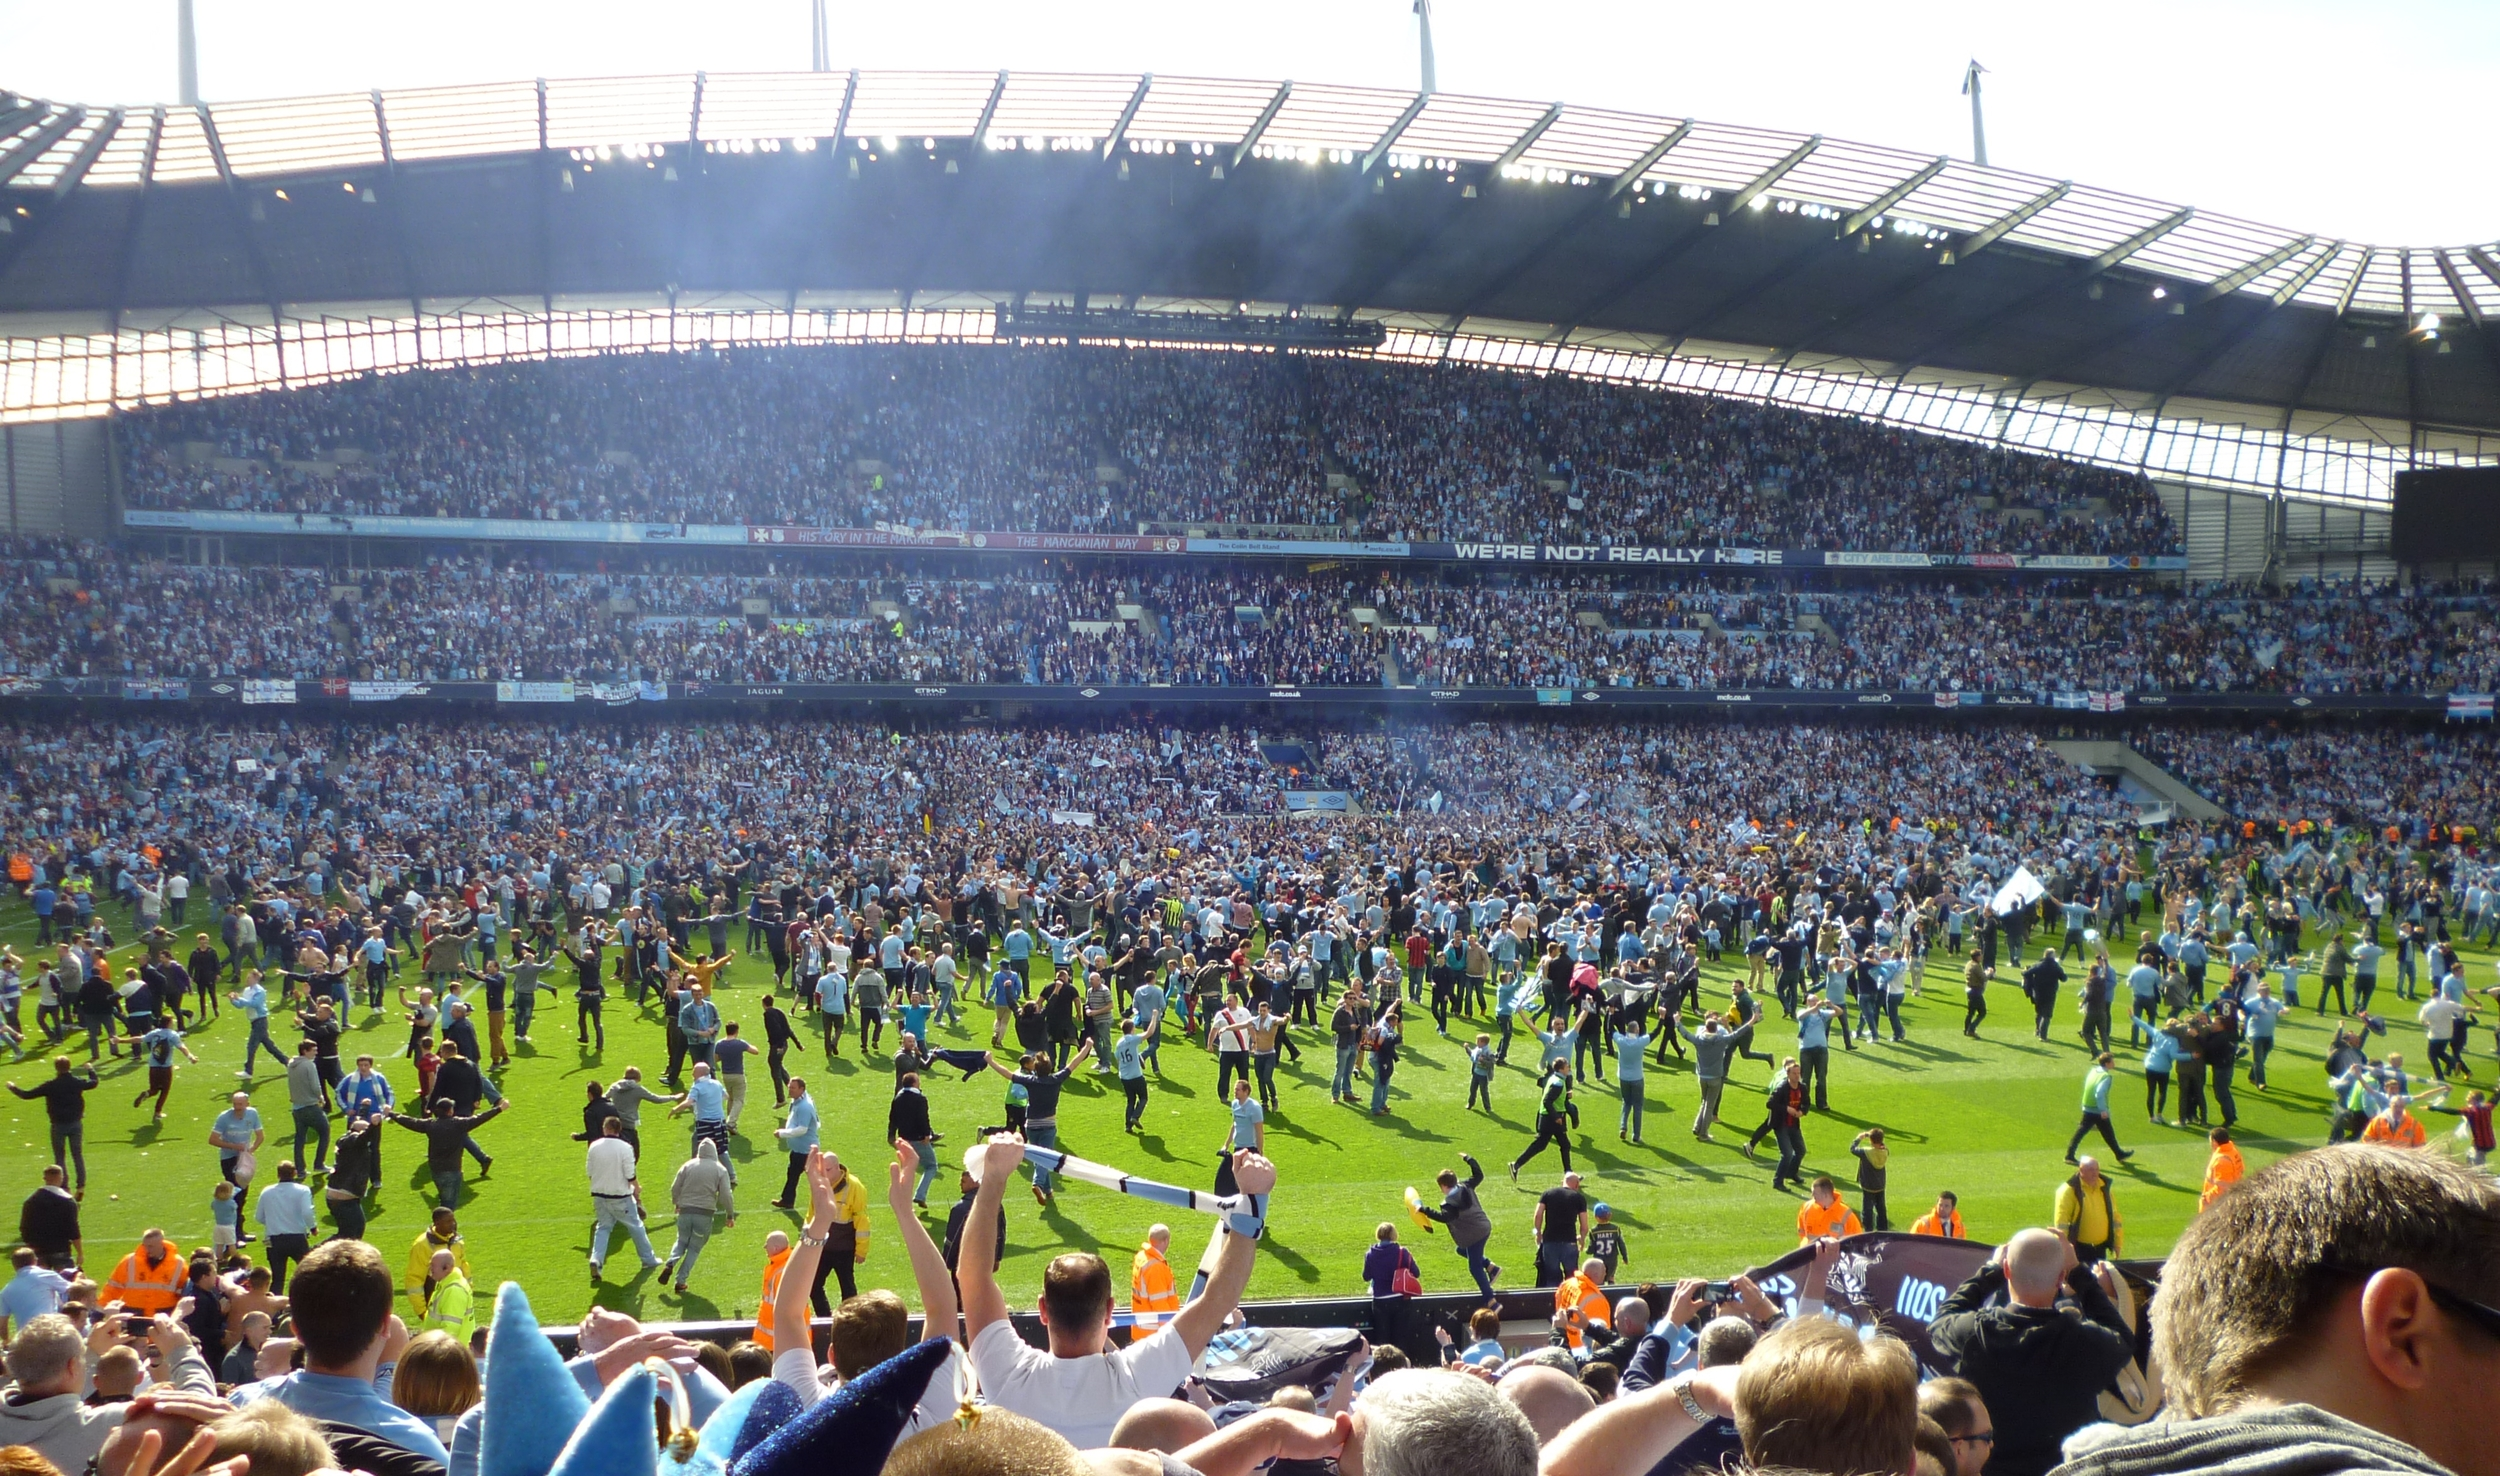 source:https://upload.wikimedia.org/wikipedia/commons/3/38/Manchester_City_pitch_invasion.JPG